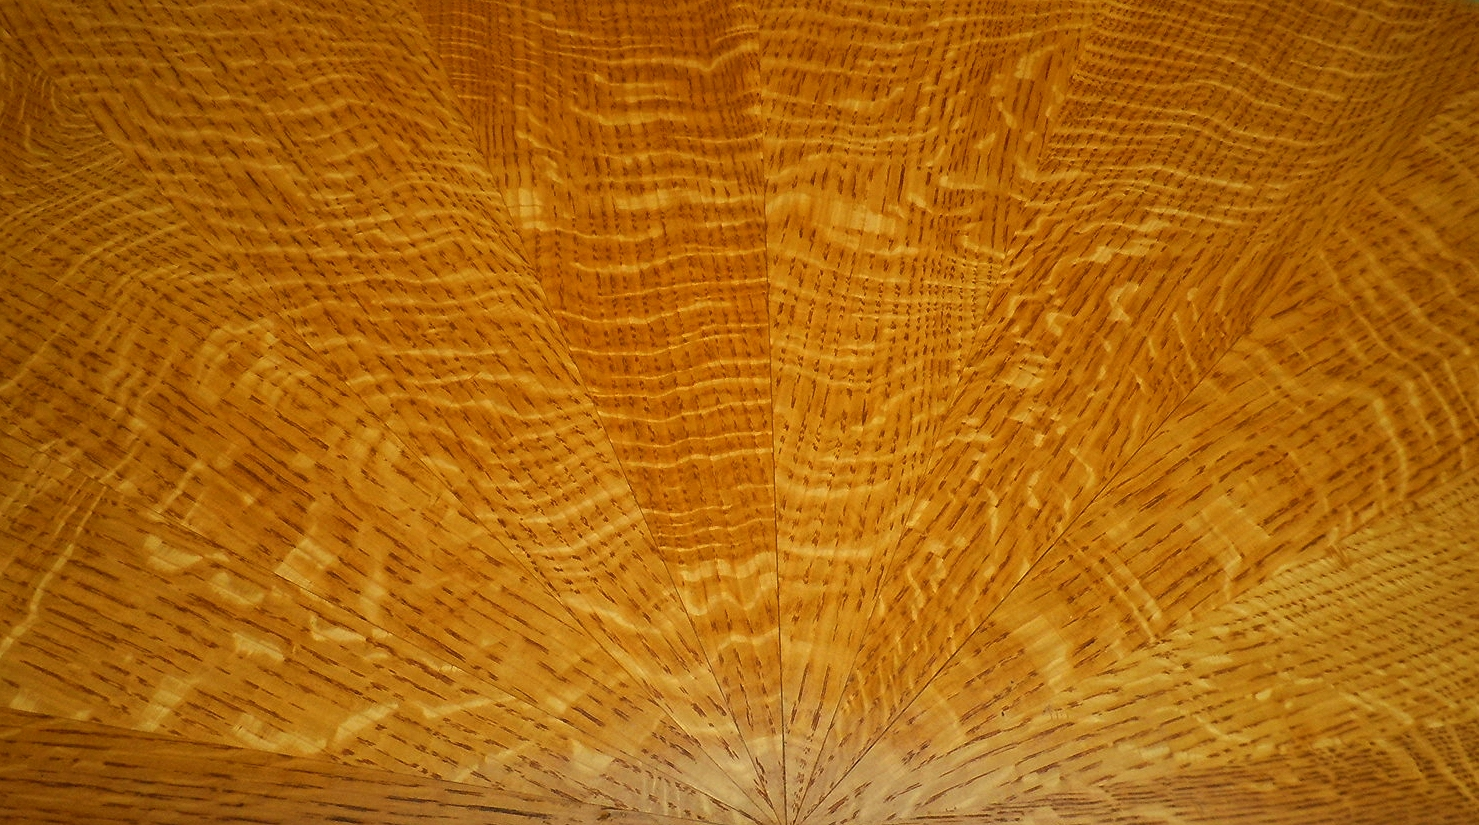 Sunburst pattern tabletop, quartersawn white oak